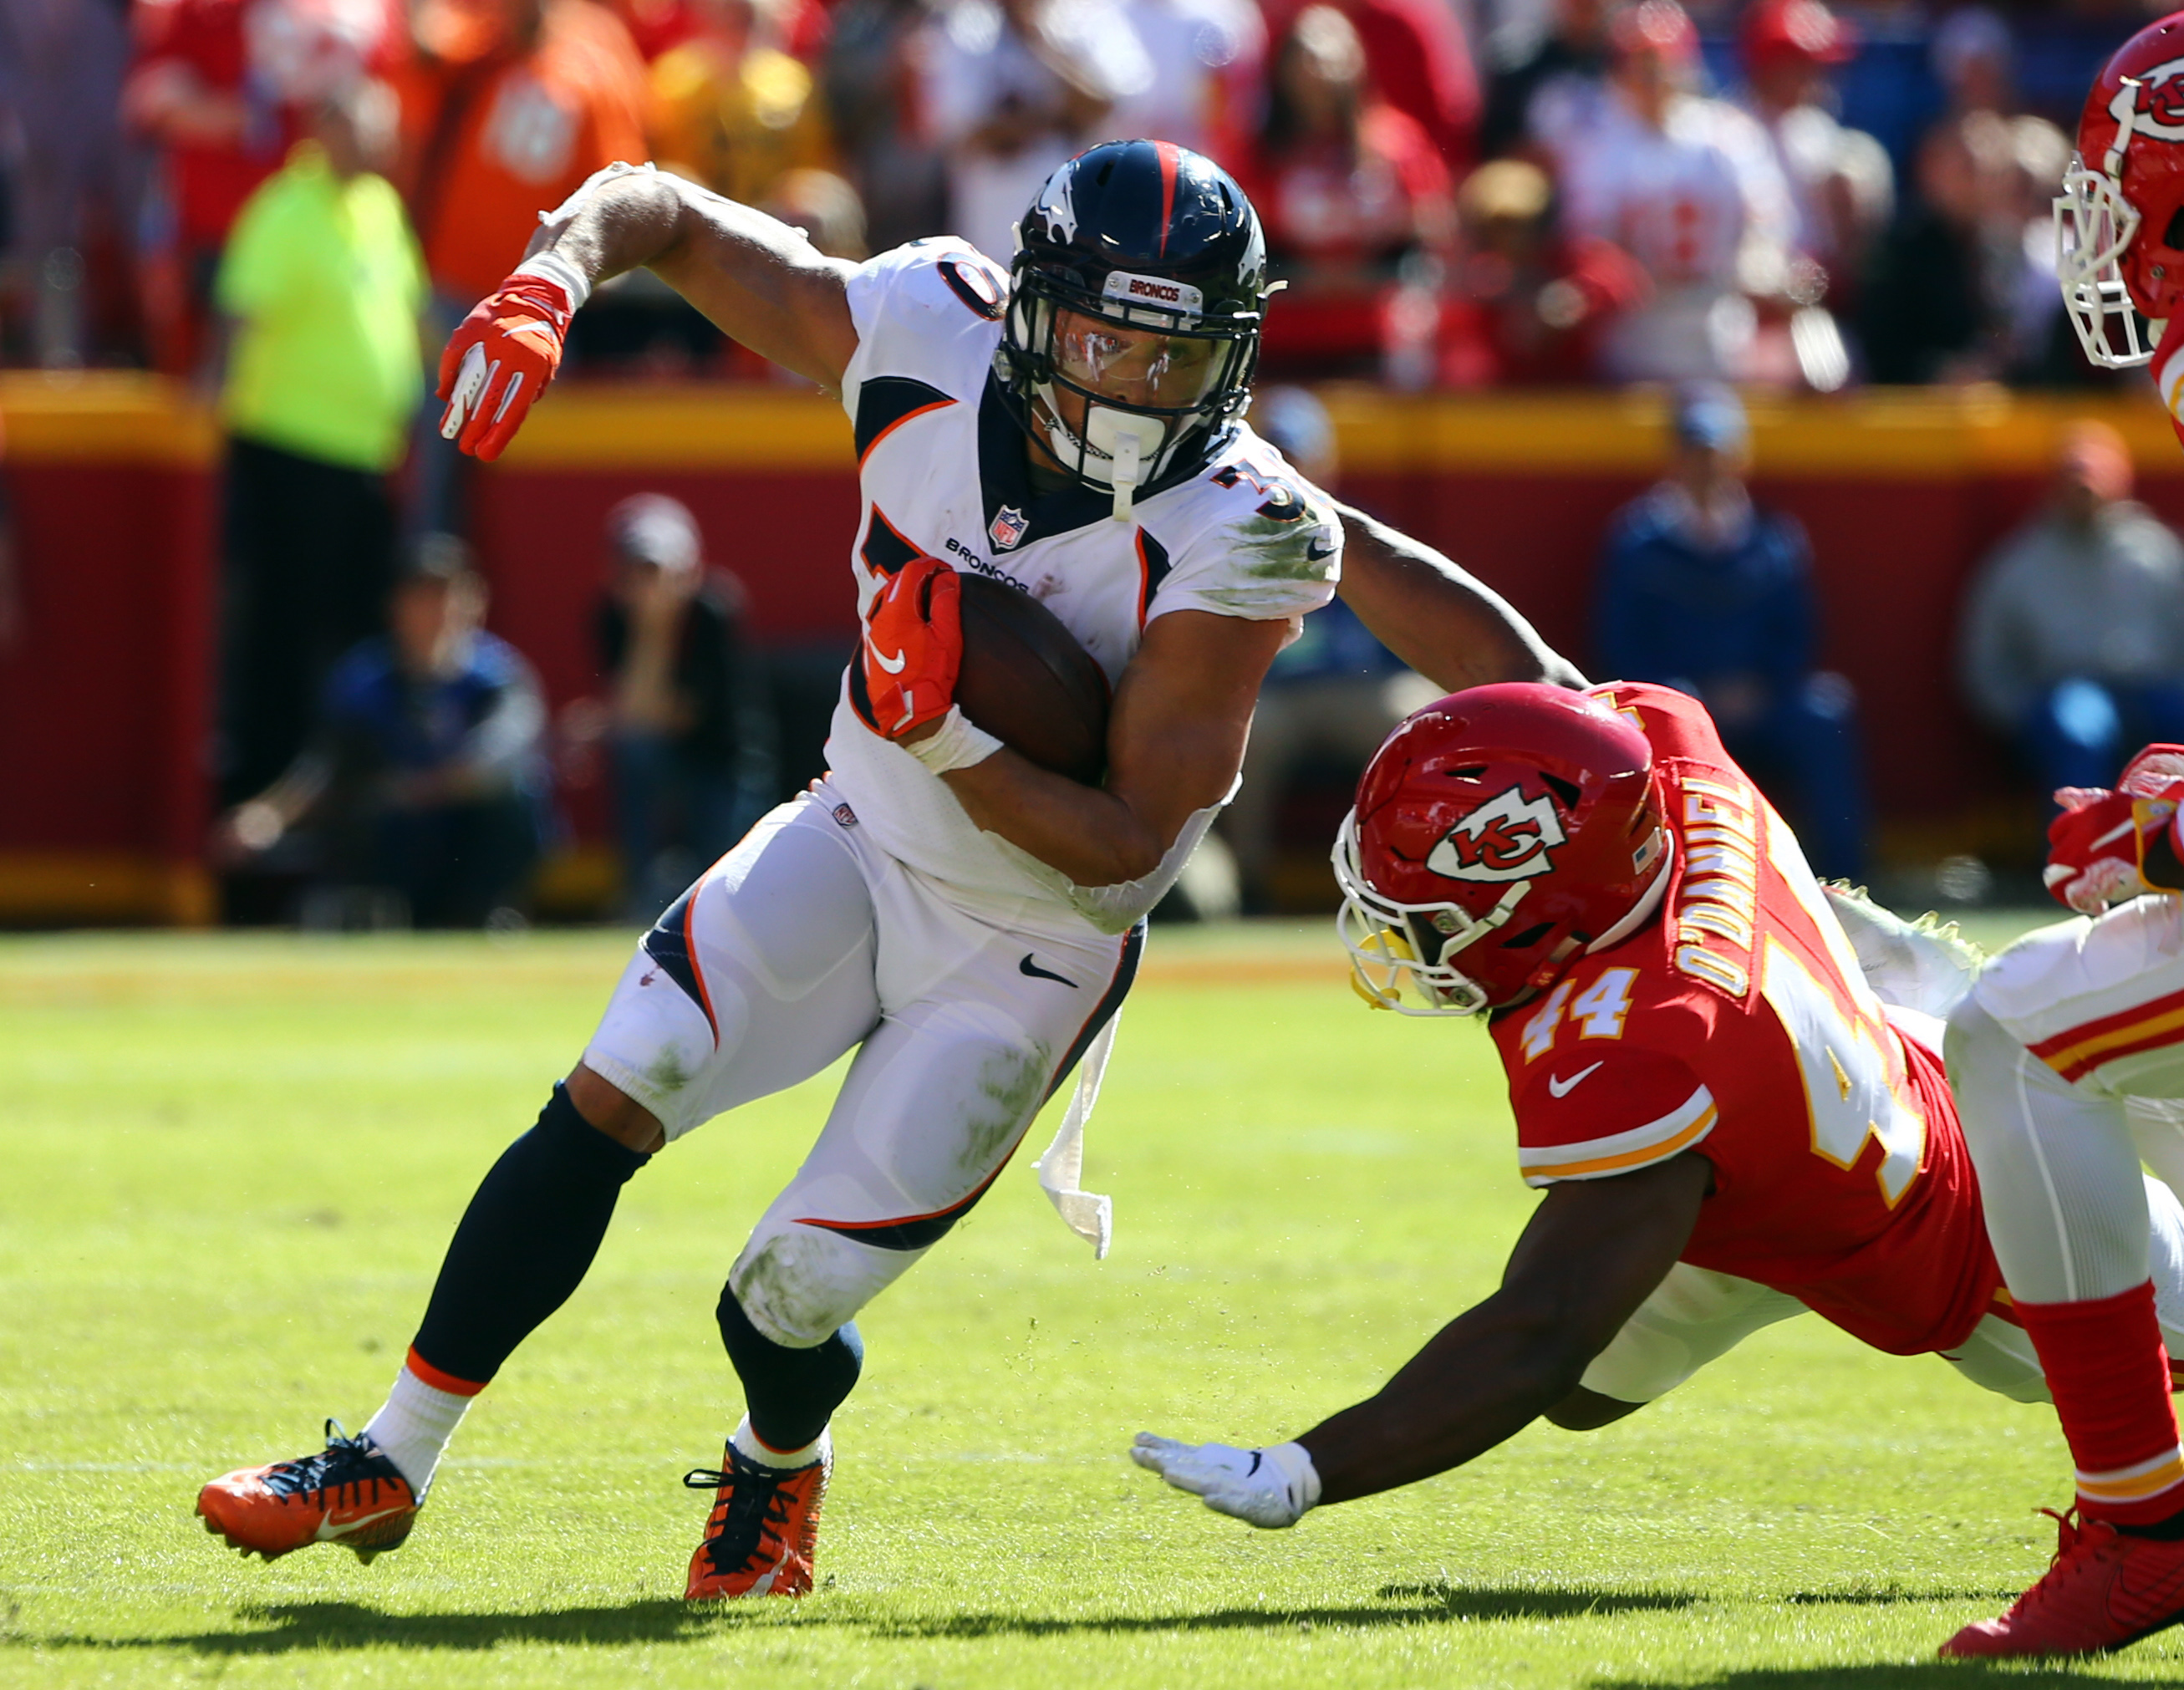 Lindsay Knows that Beating the Chiefs is Only Way the Broncos Regain AFC West Footing